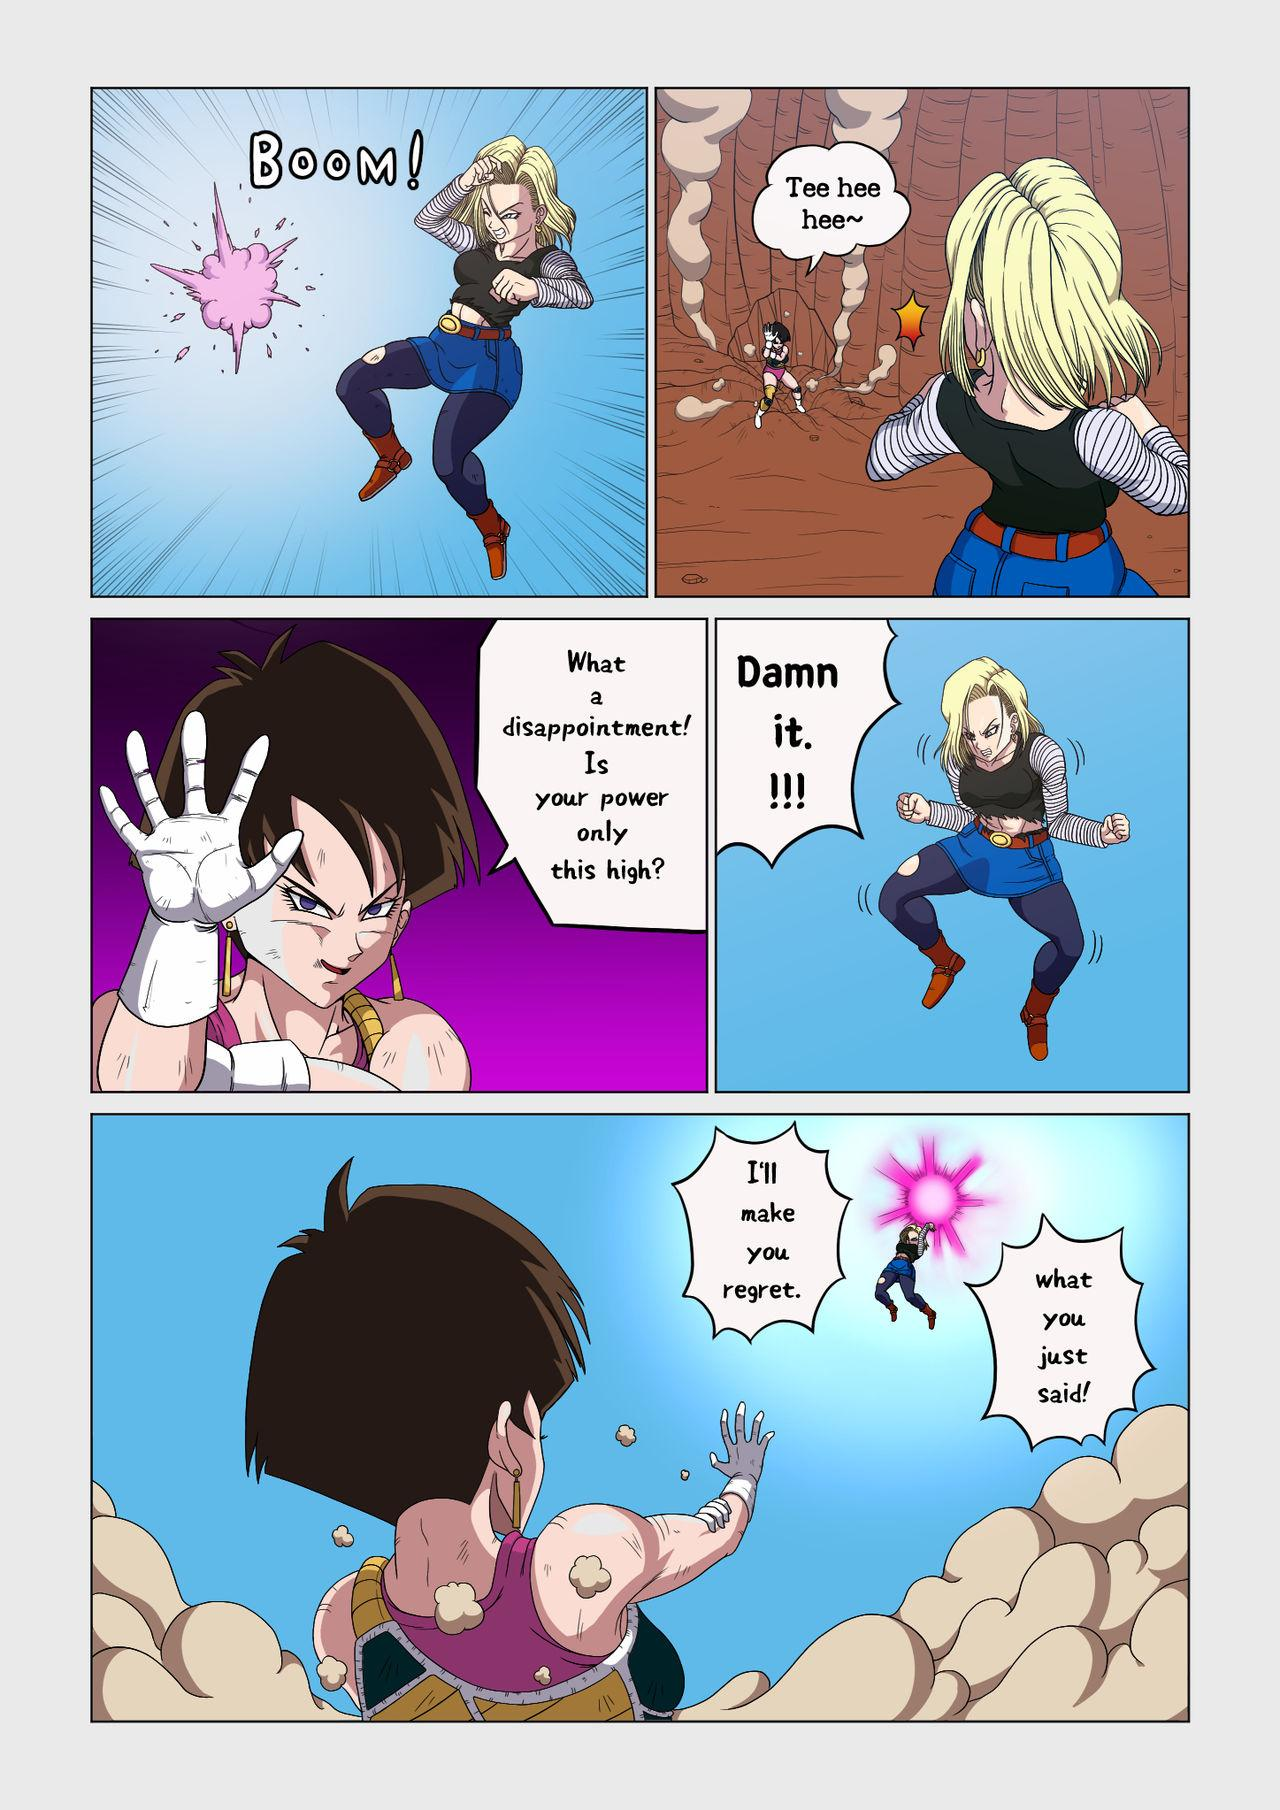 Android 18 vs Baby 5